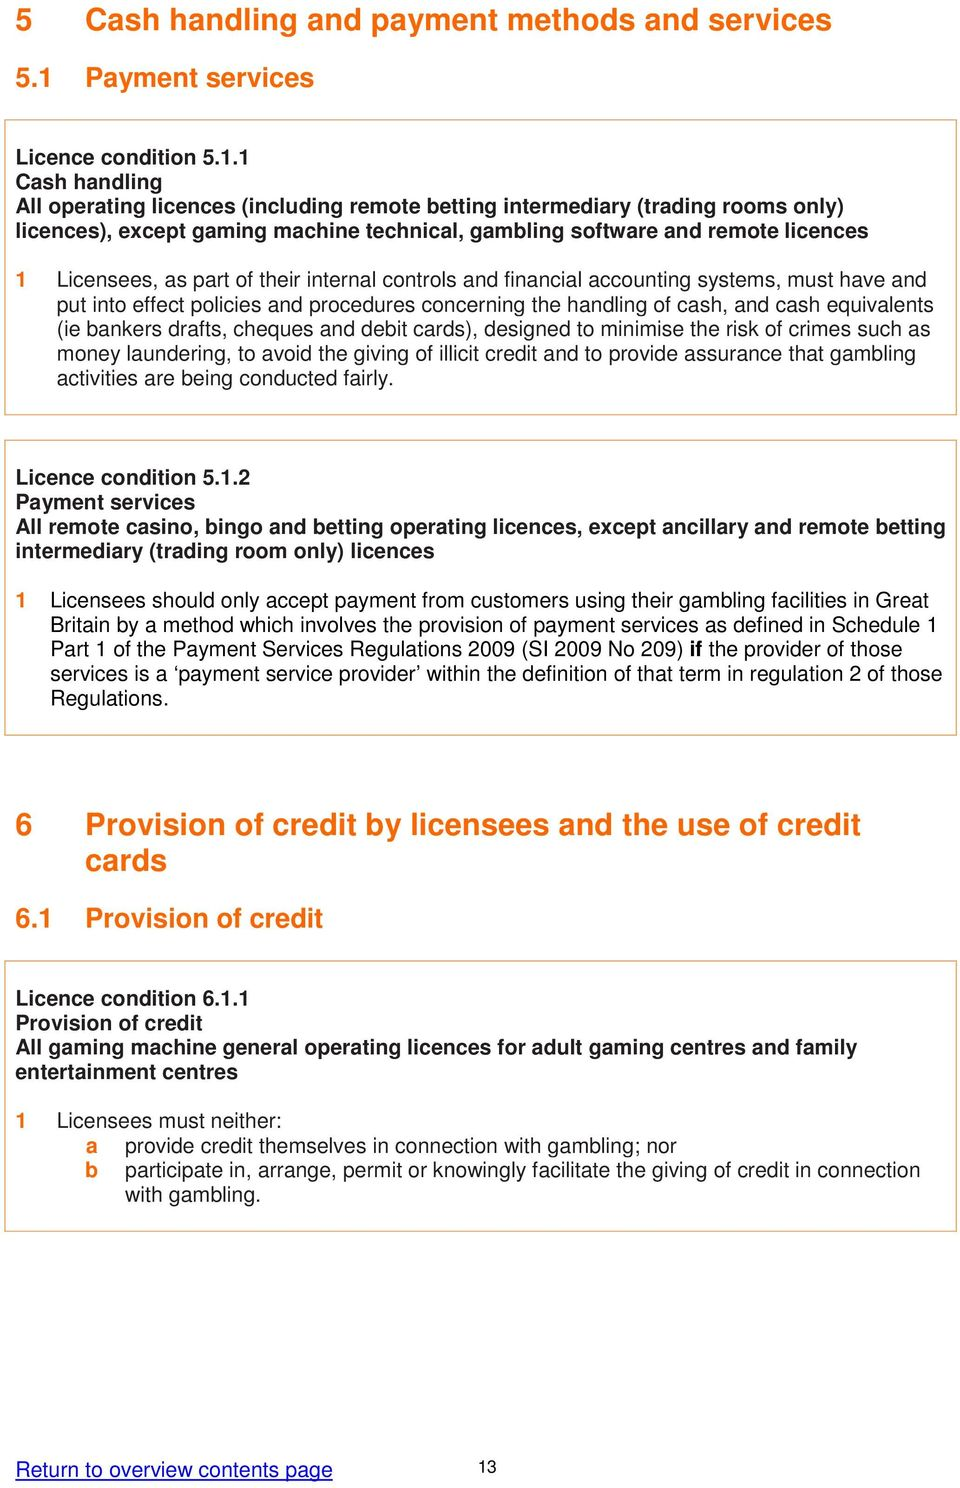 1 Cash handling All operating licences (including remote betting intermediary (trading rooms only) licences), except gaming machine technical, gambling software and remote licences 1 Licensees, as